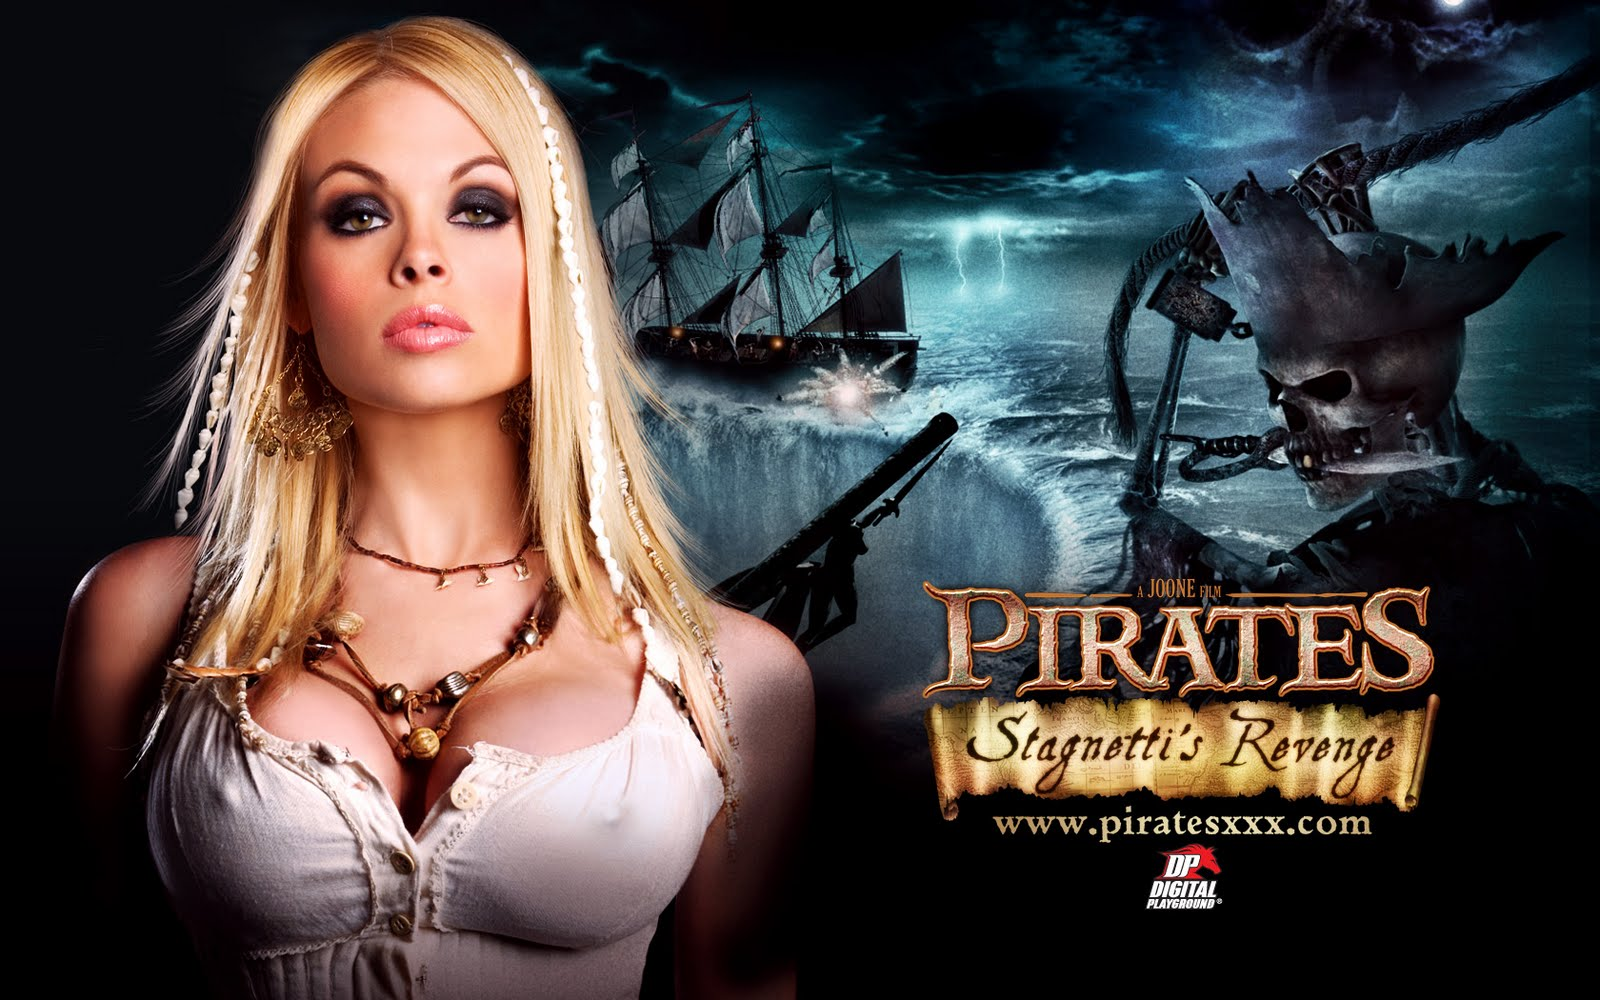 pirates of the caribbean jesse jane